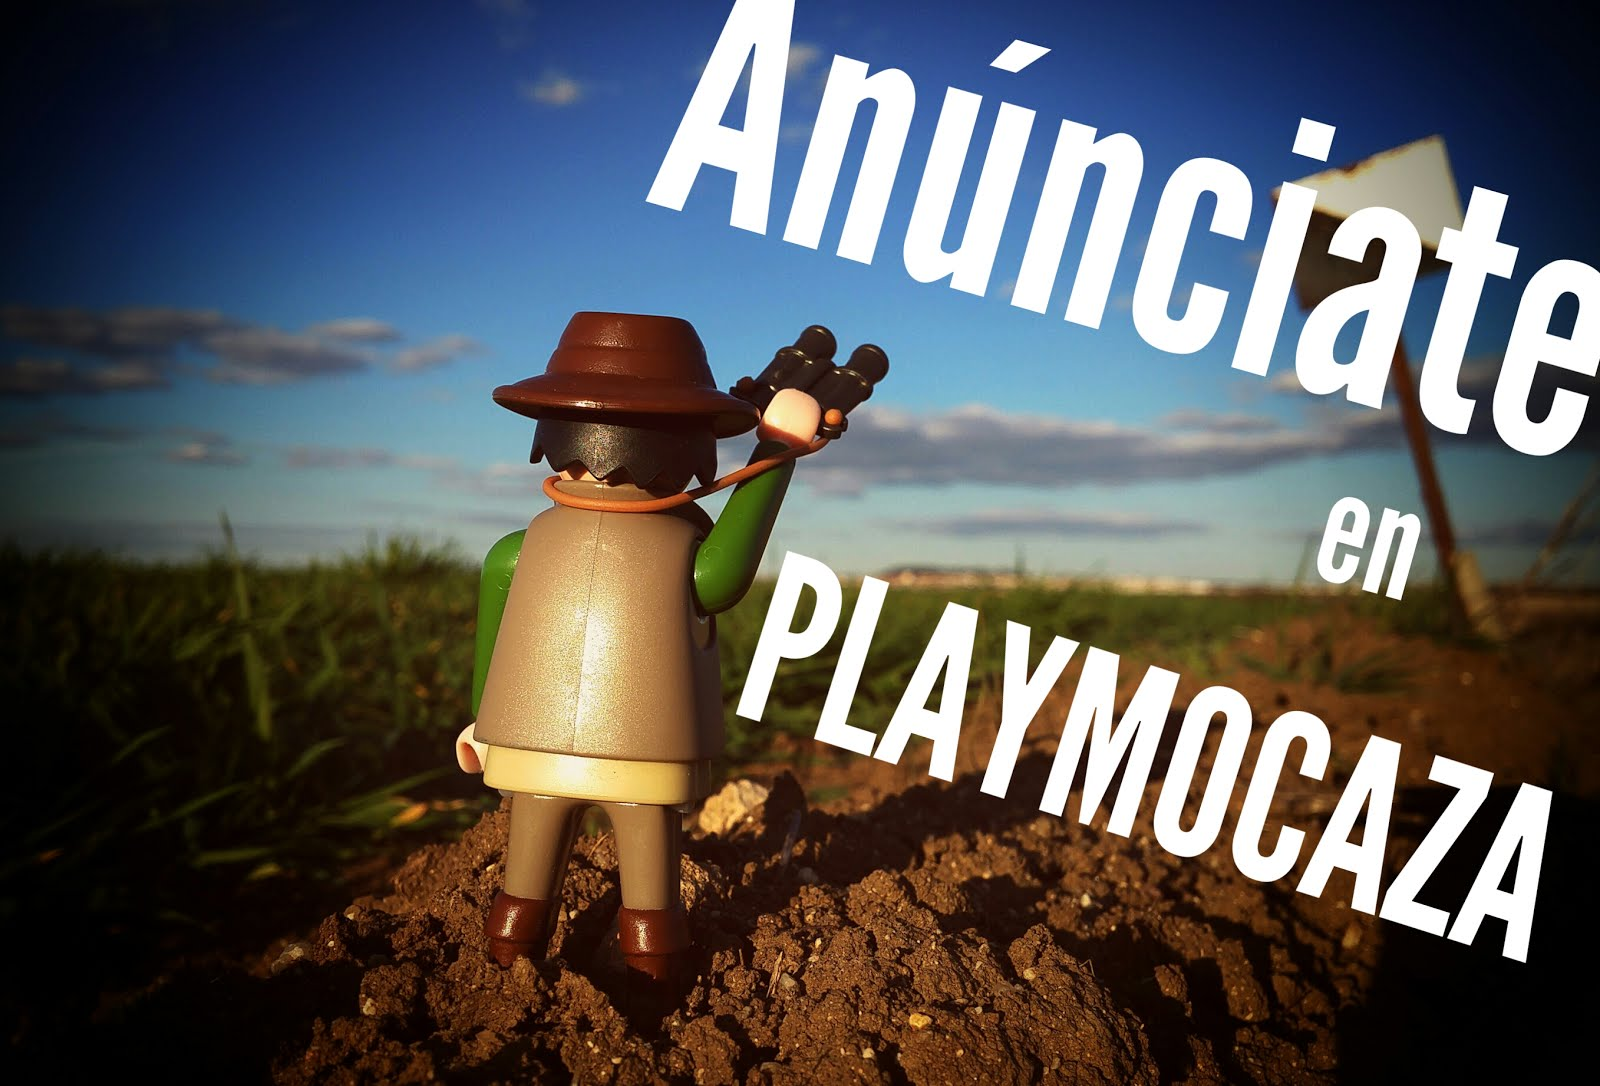 Anunciate en PLAYMOCAZA